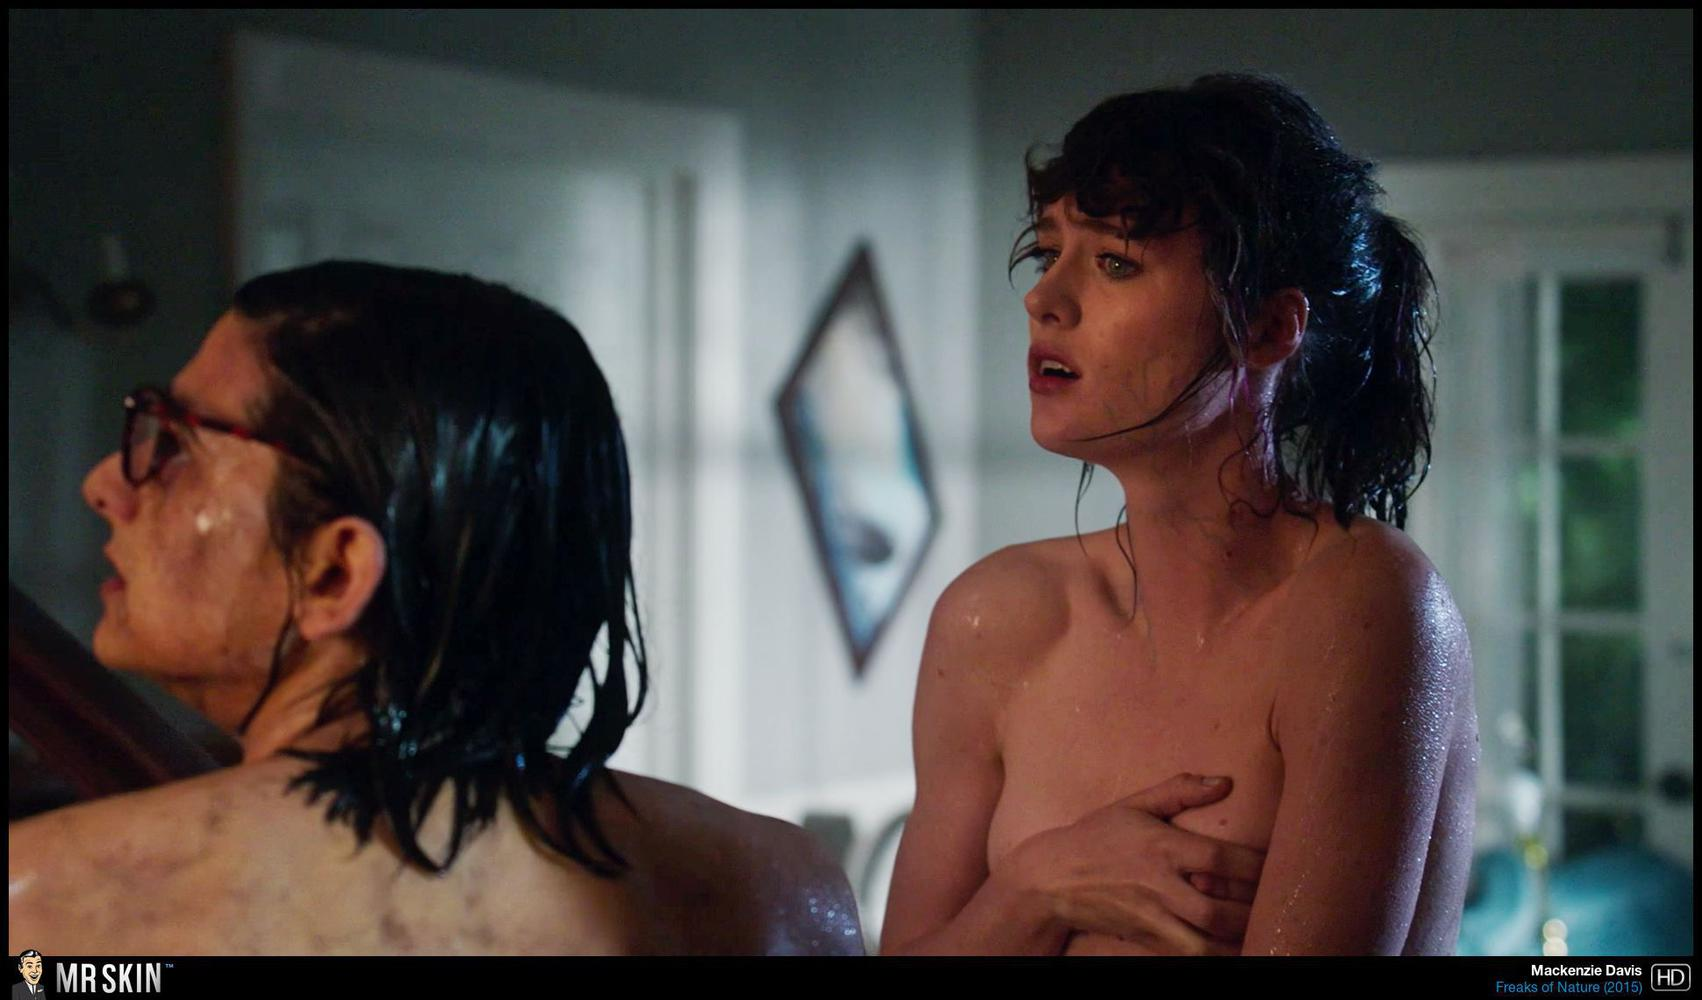 Have blade runner naked video apologise